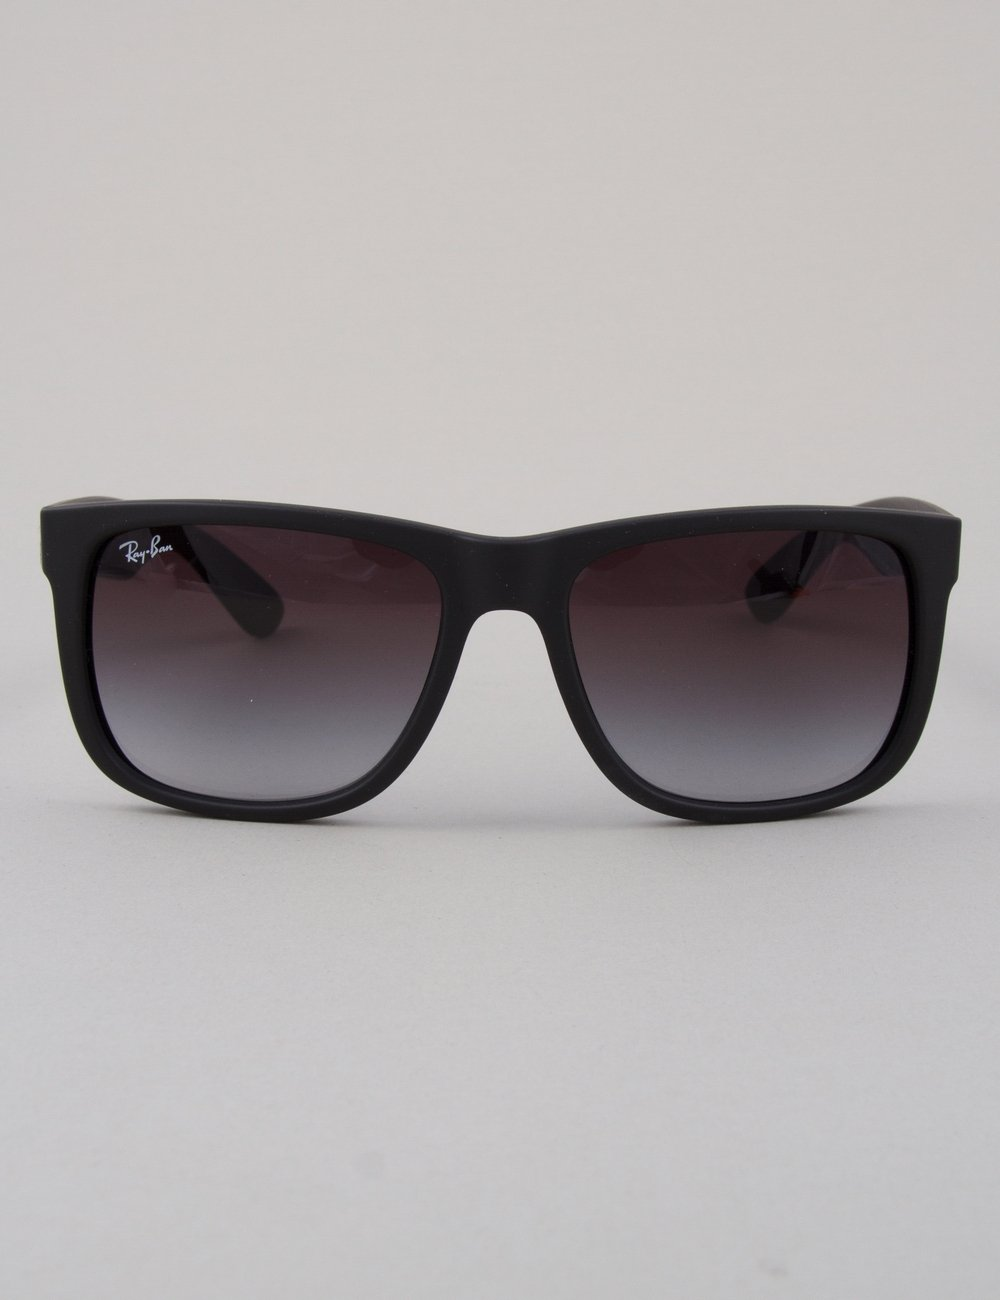 Ray Ban Justin Sunglasses Black Rubber Grey Gradient